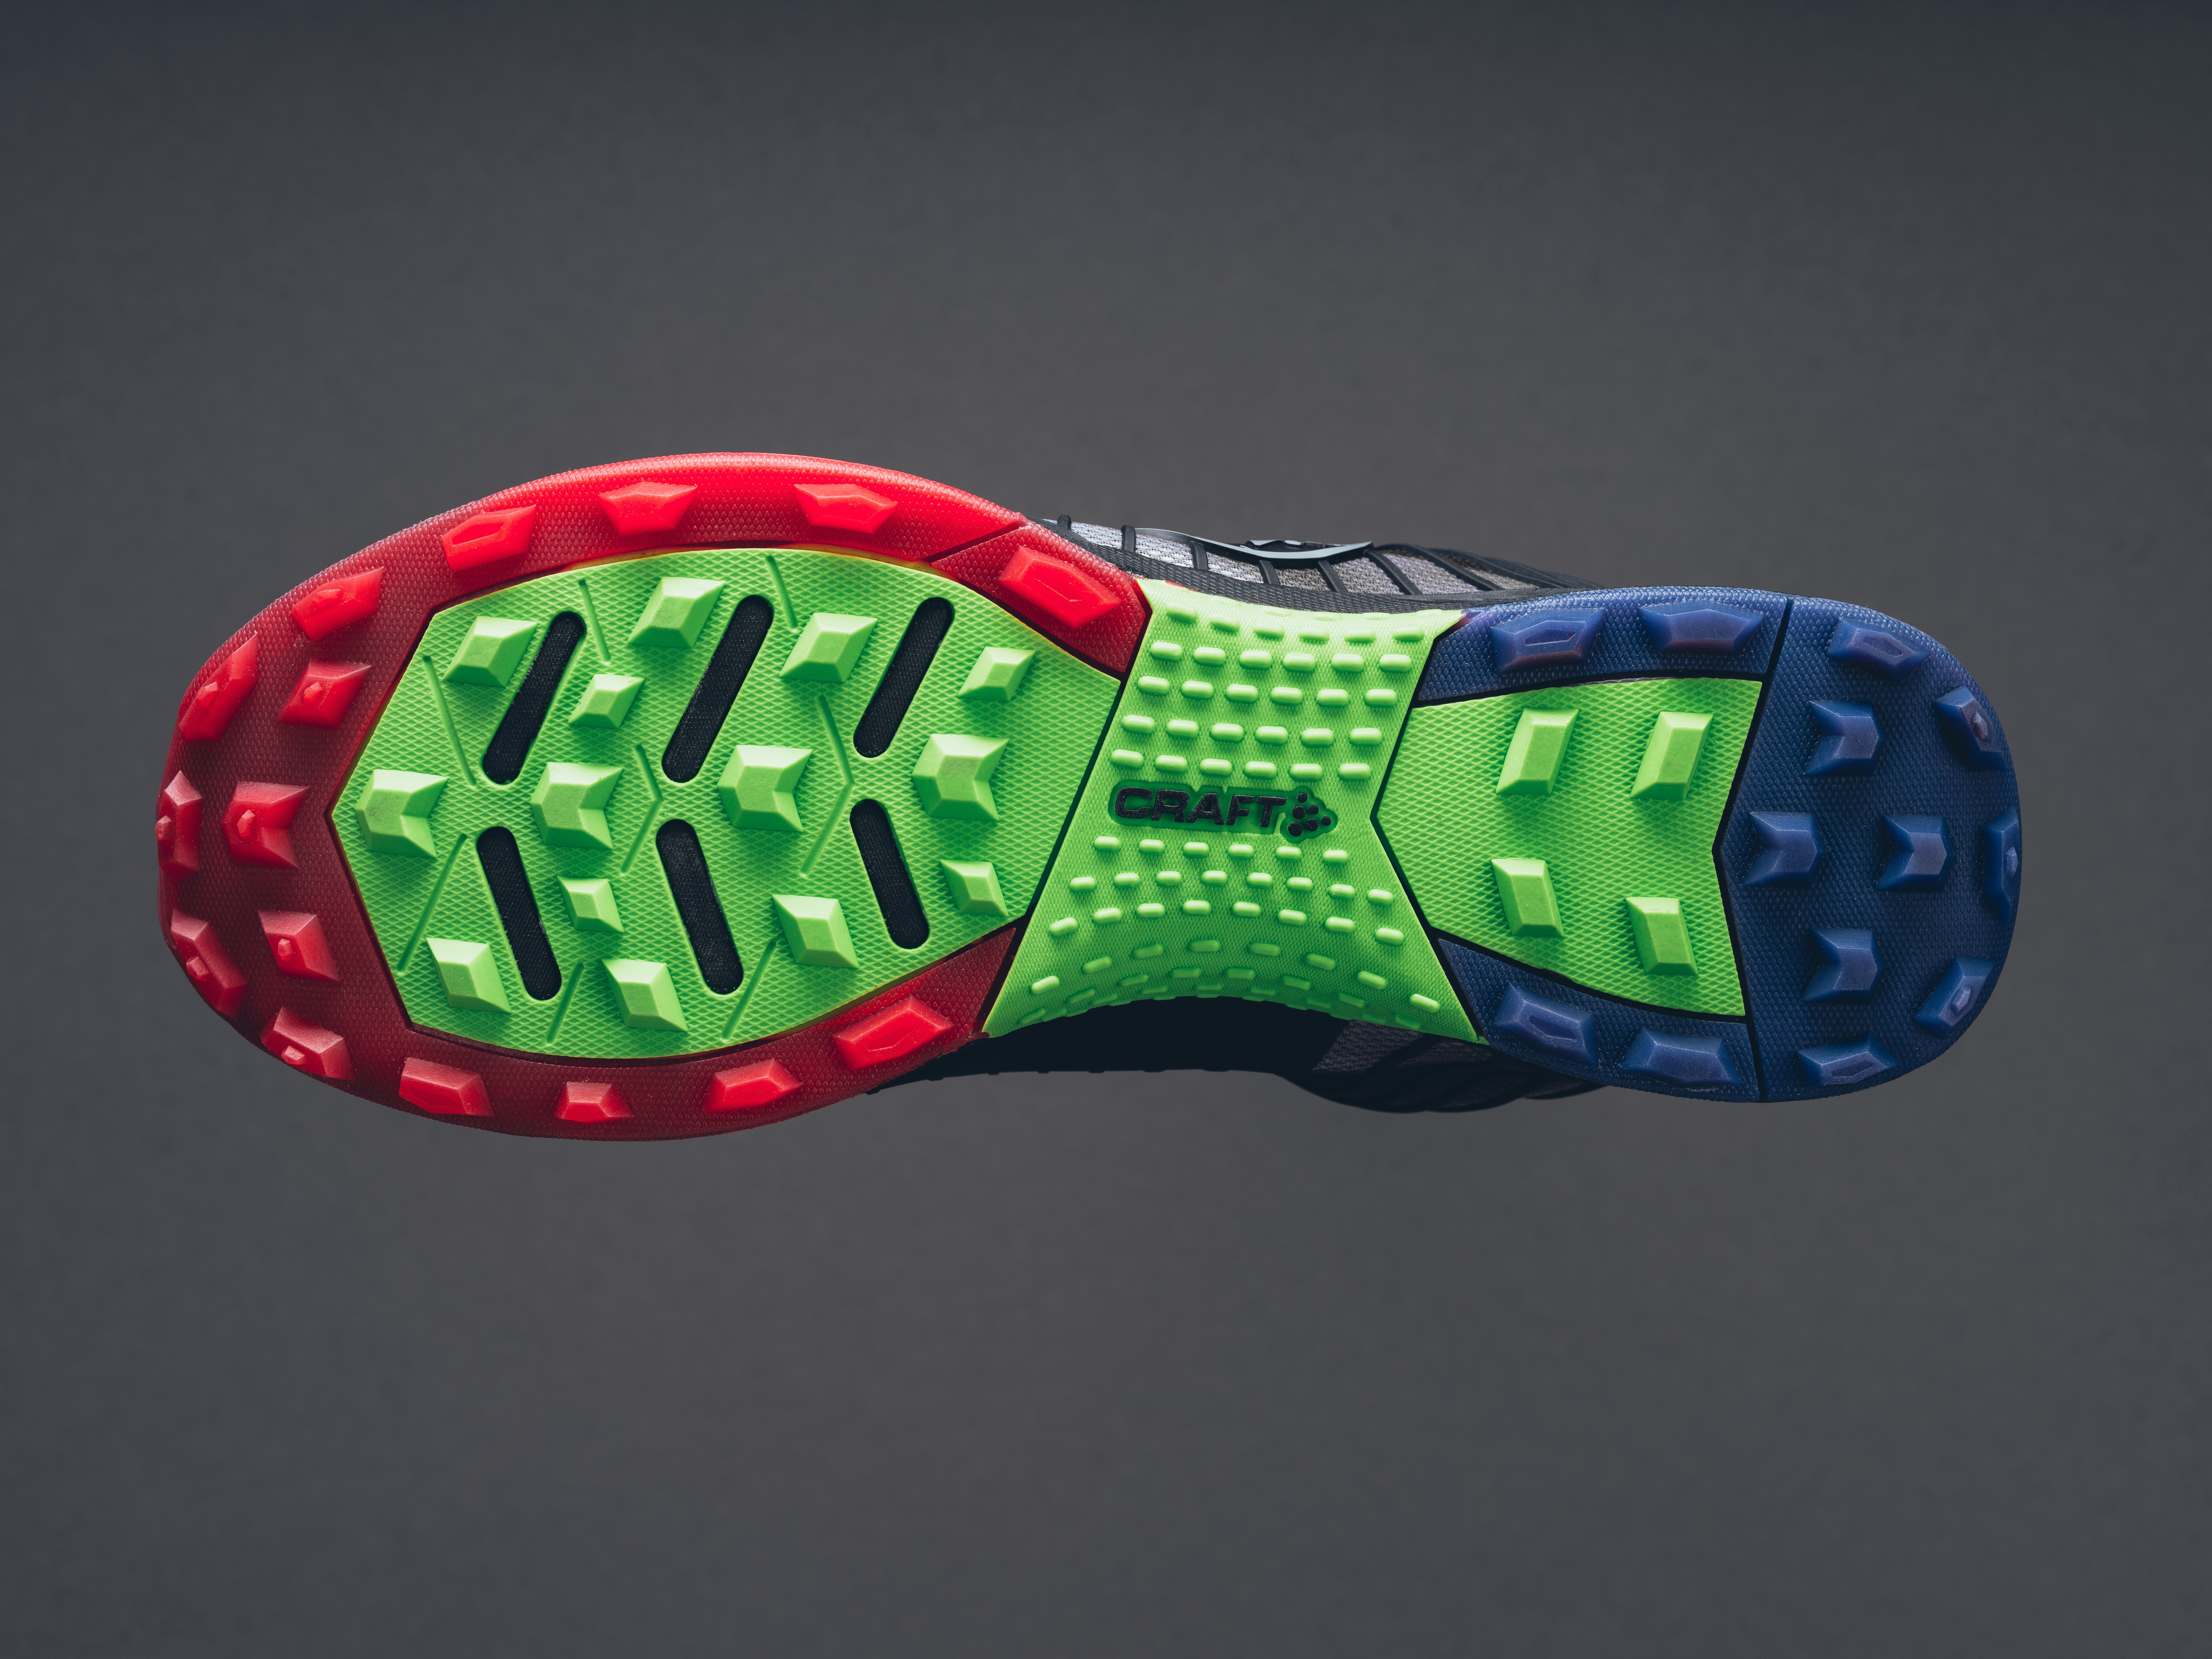 eb0babef8 Spartan and CRAFT Sportswear to Launch First-In-Sport High Performance  Obstacle Course Racing Footwear